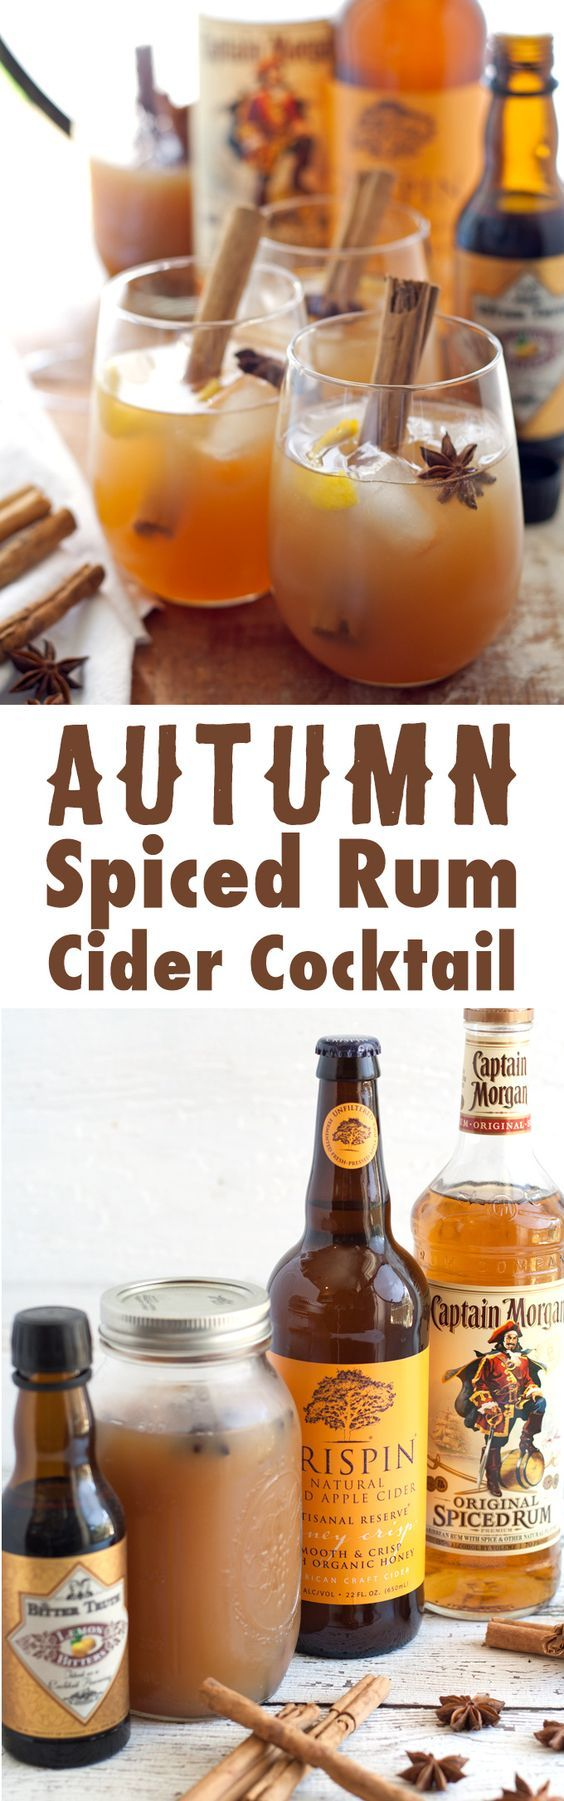 17 best images about drinks on pinterest paloma cocktail for Mixed drink with spiced rum